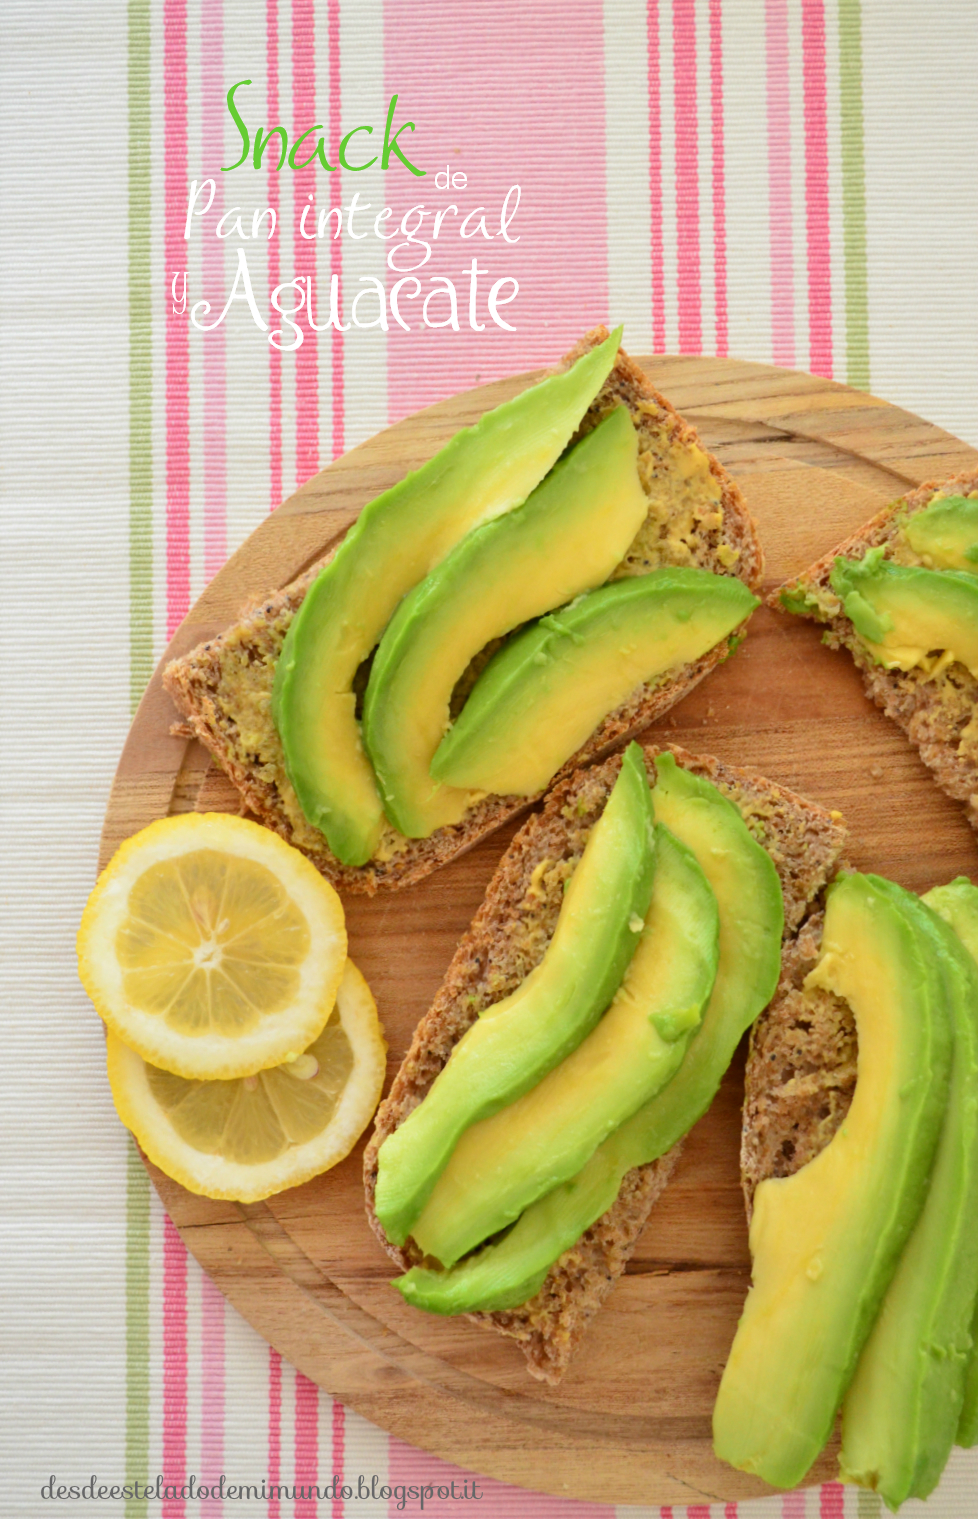 snack whole bread and avocado vegan